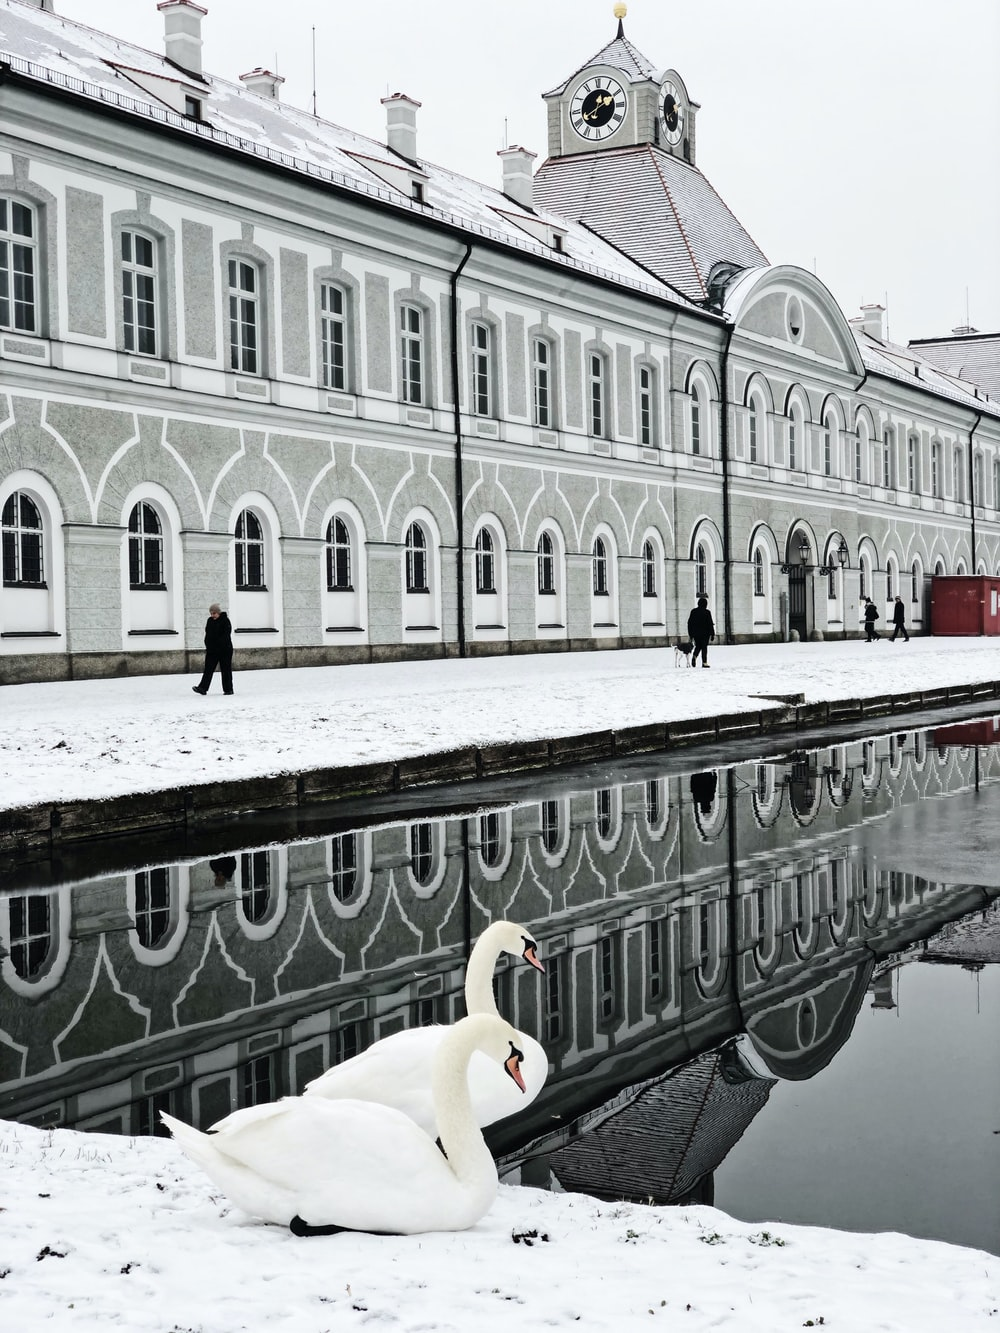 two white swans across body of water